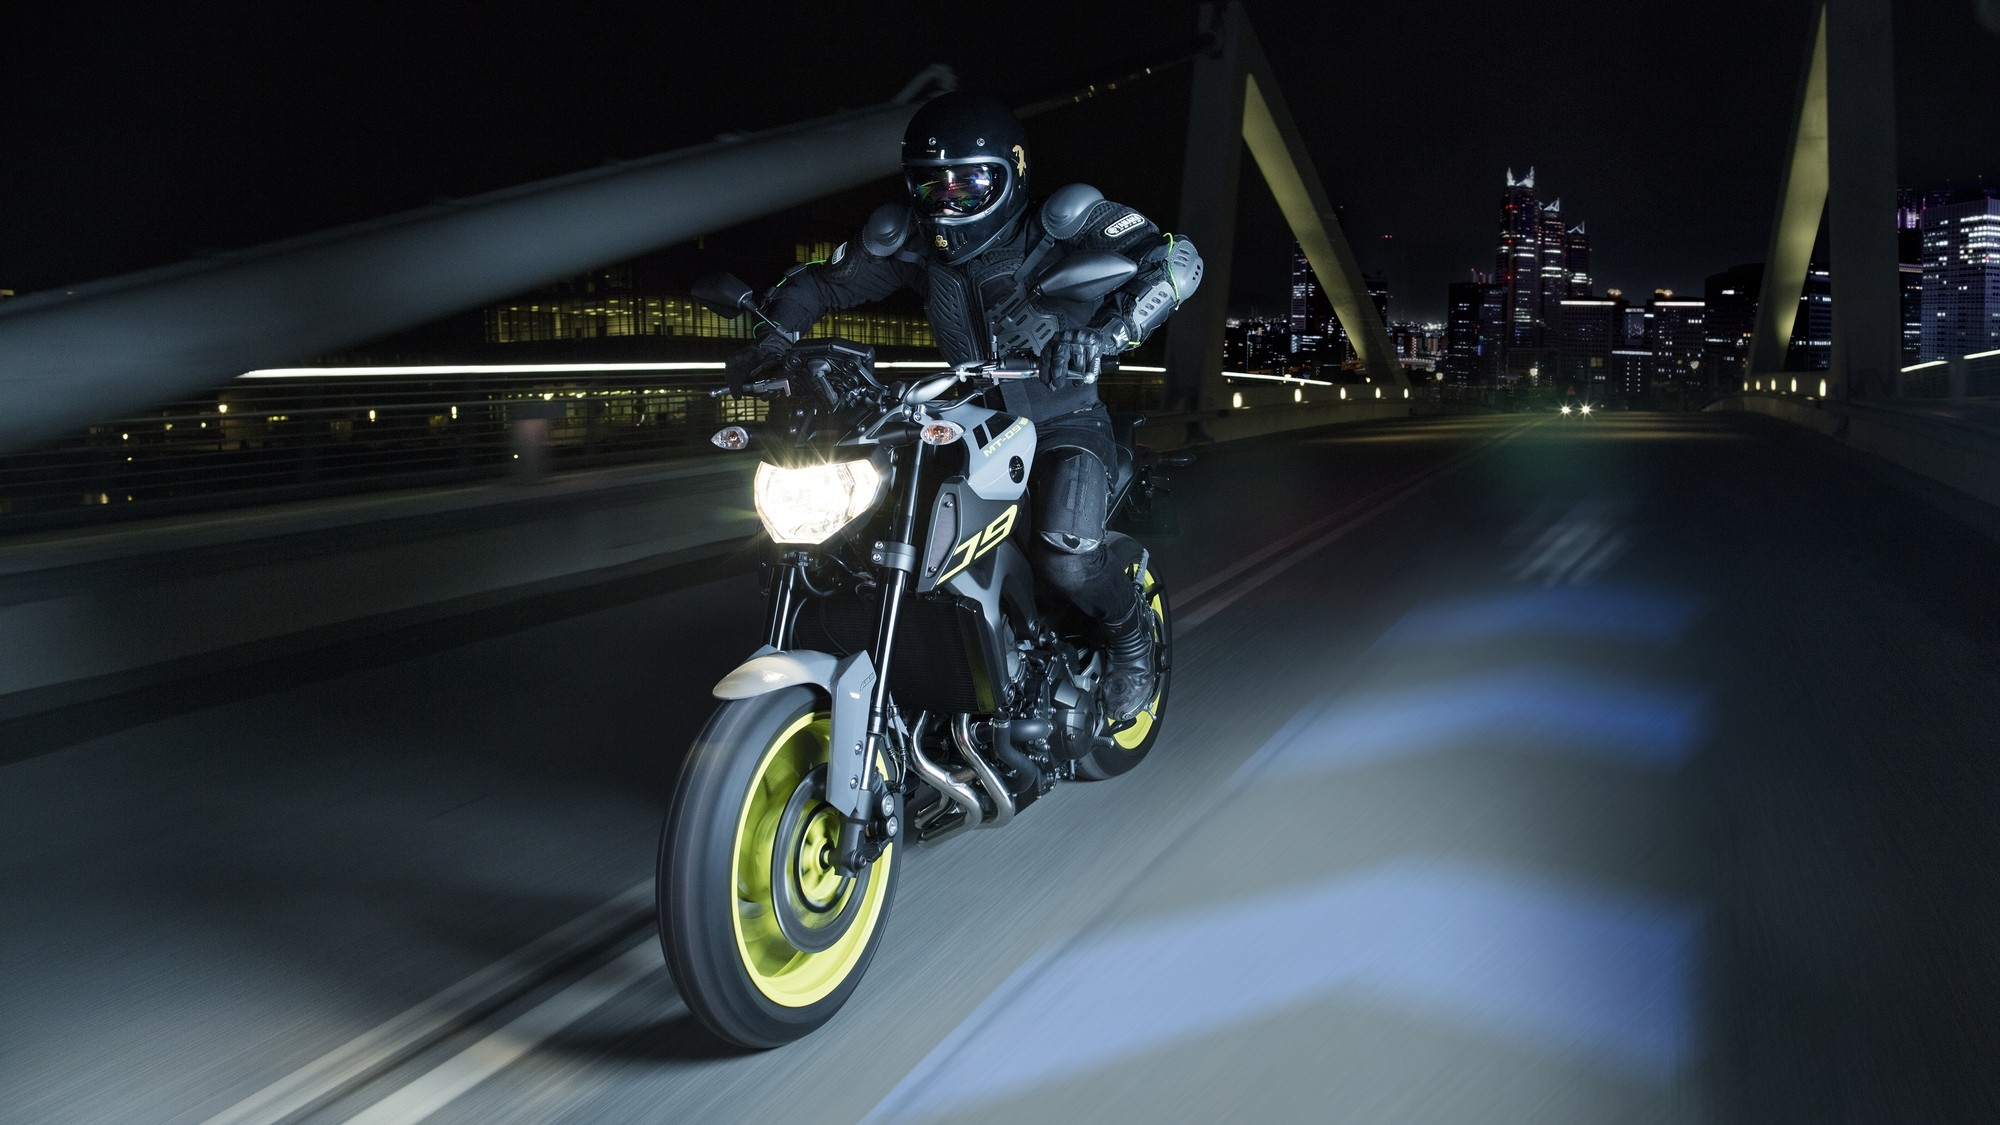 Cool Race Car Wallpaper Yamaha Adds Night Fluo To More Mt Bikes Shows The Mt 07